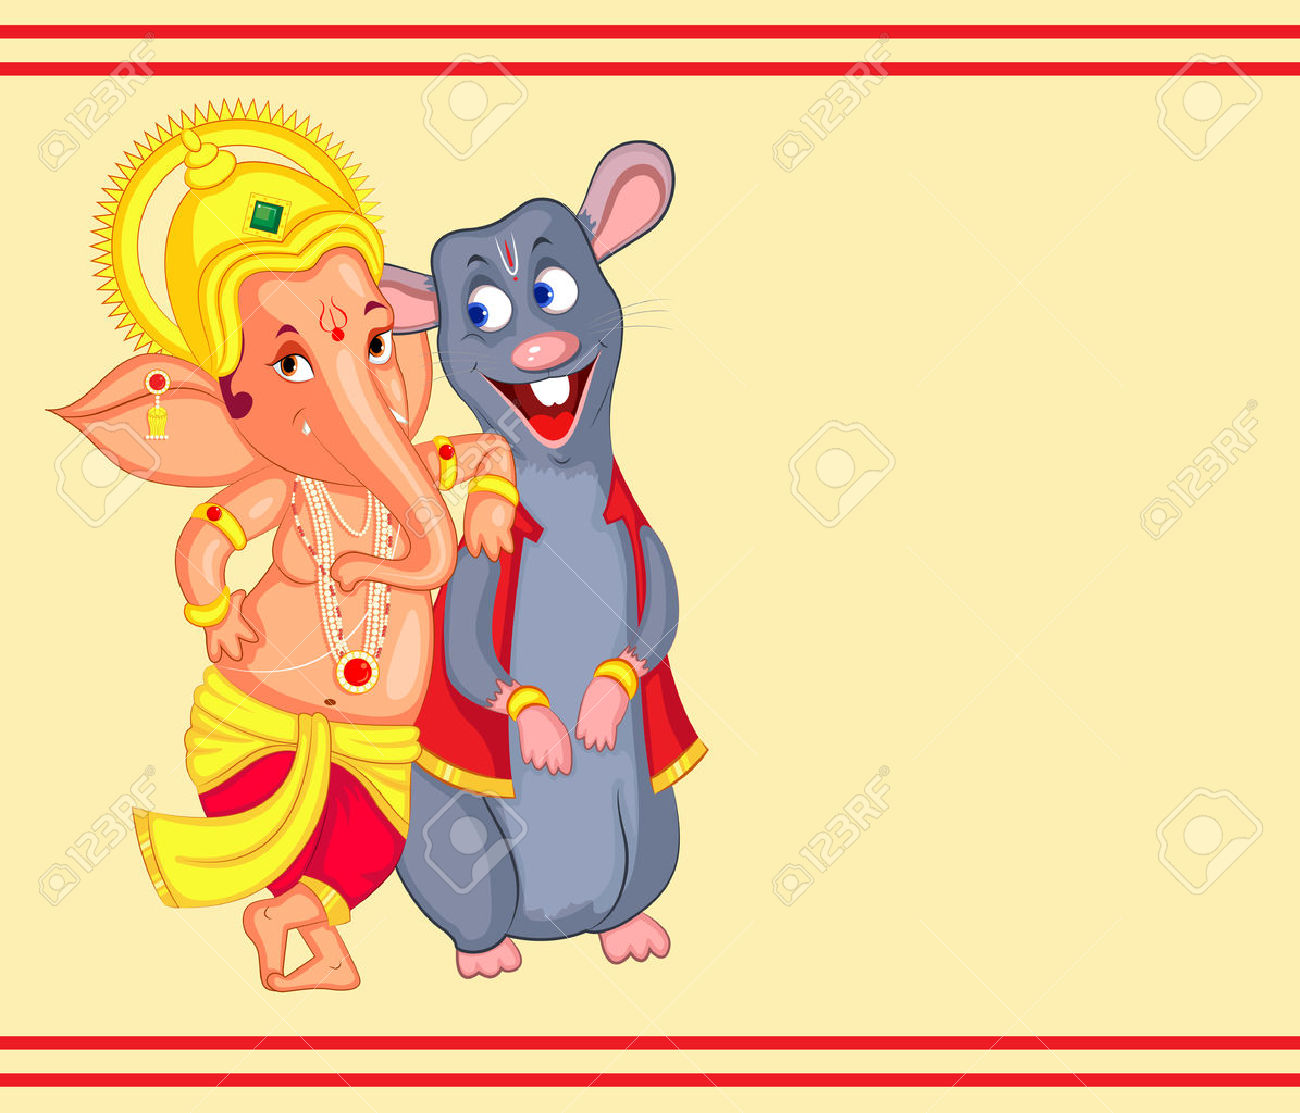 Lord Ganesha In Vector For Happy Ganesh Chaturthi Royalty Free.